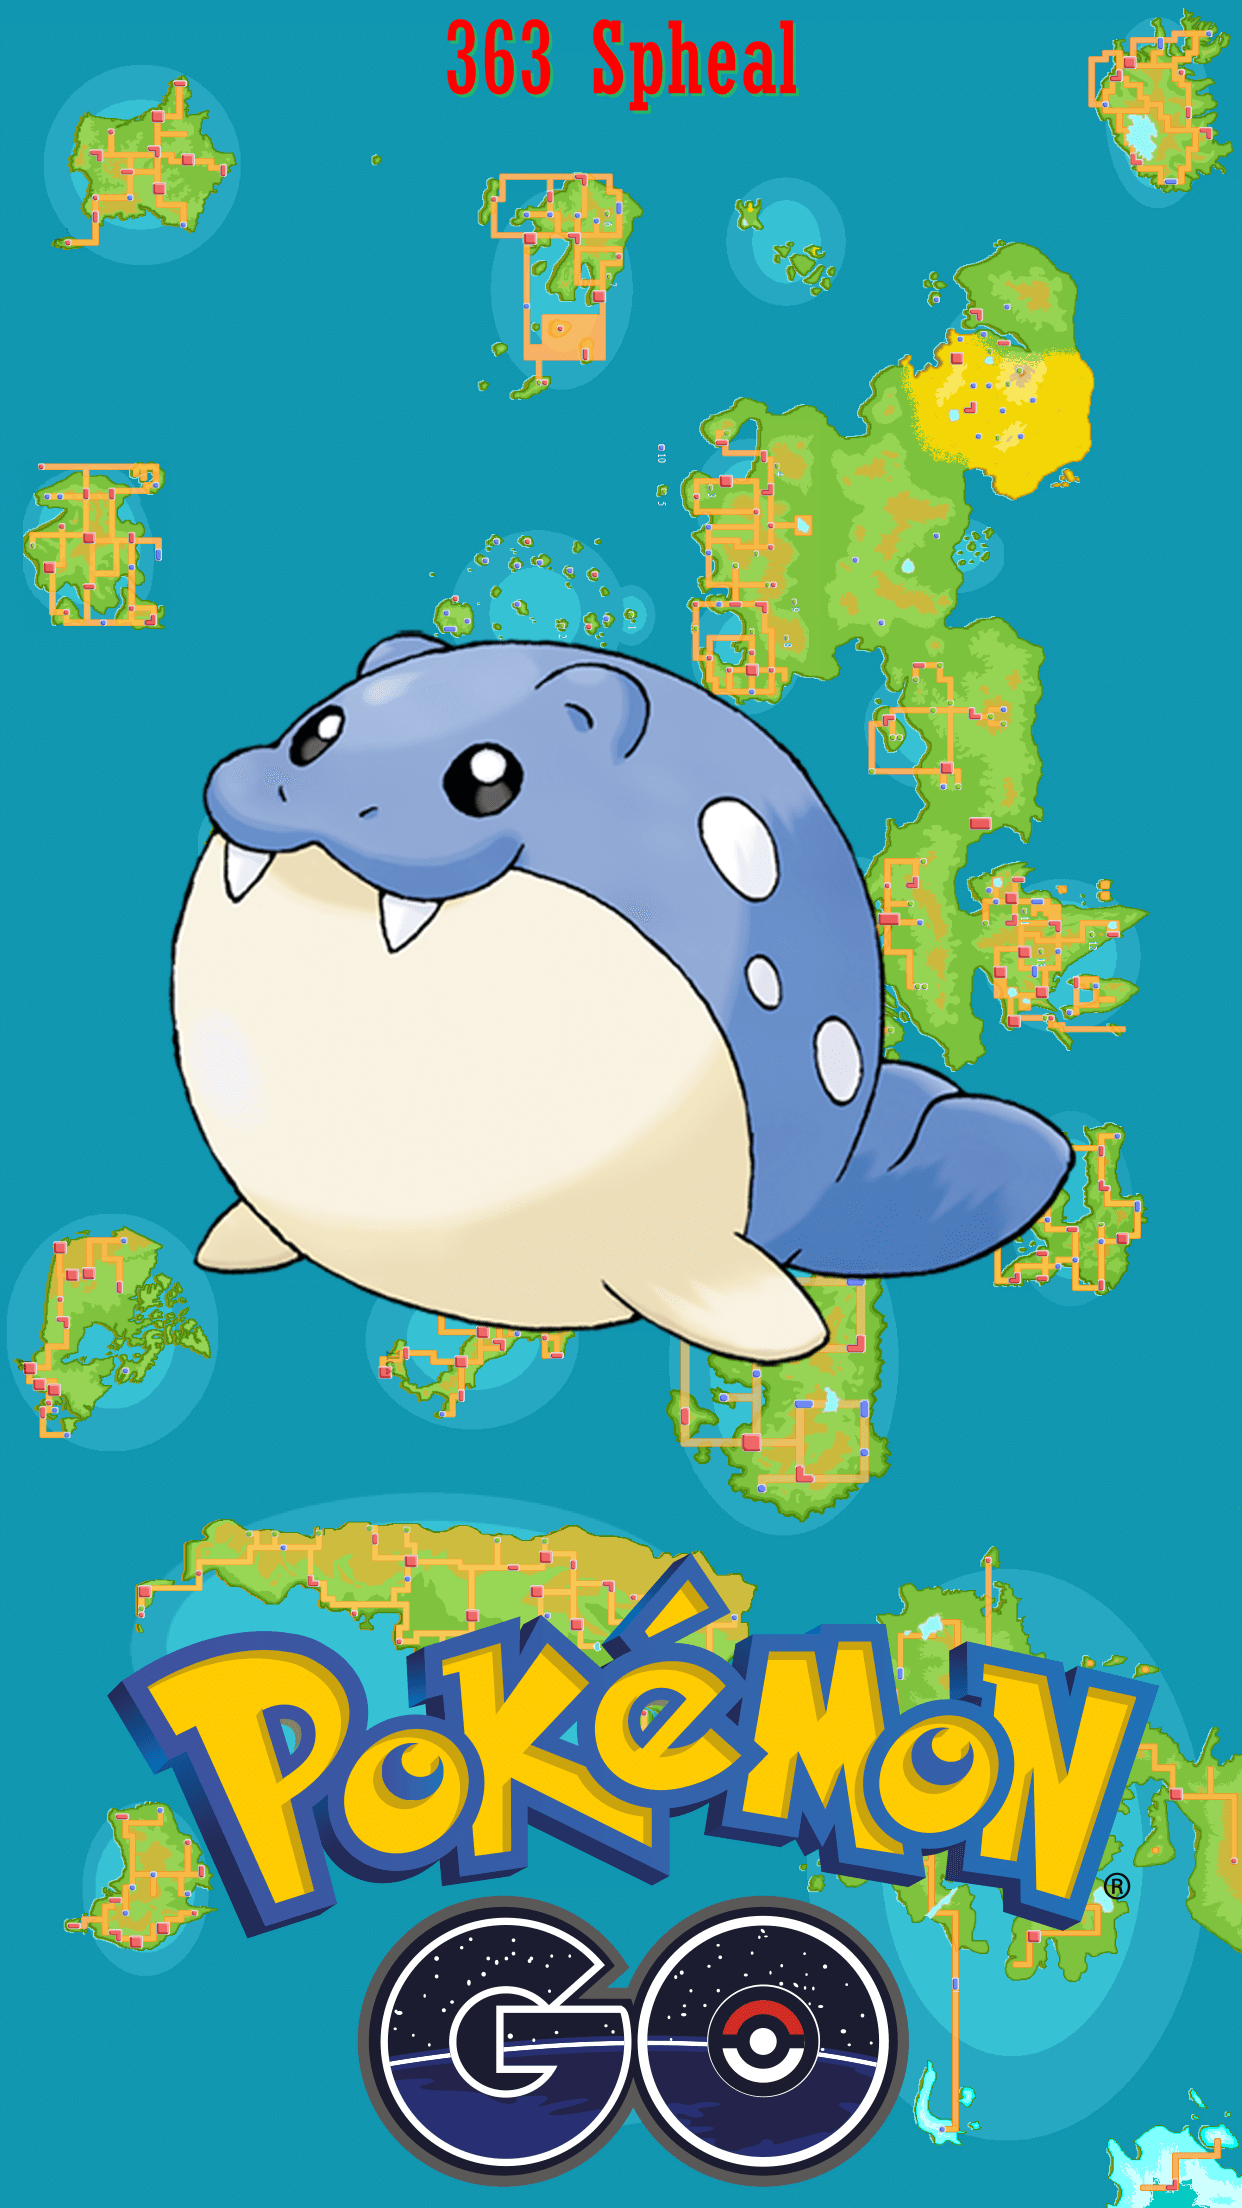 363 Street Map Spheal